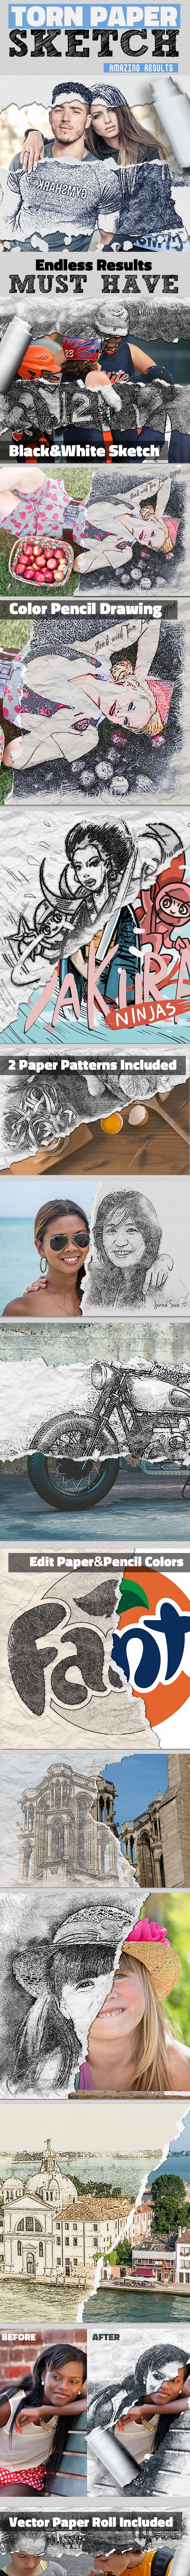 Sketch and Torn Paper Photo Effect Photoshop Action - Photo Effects Actions